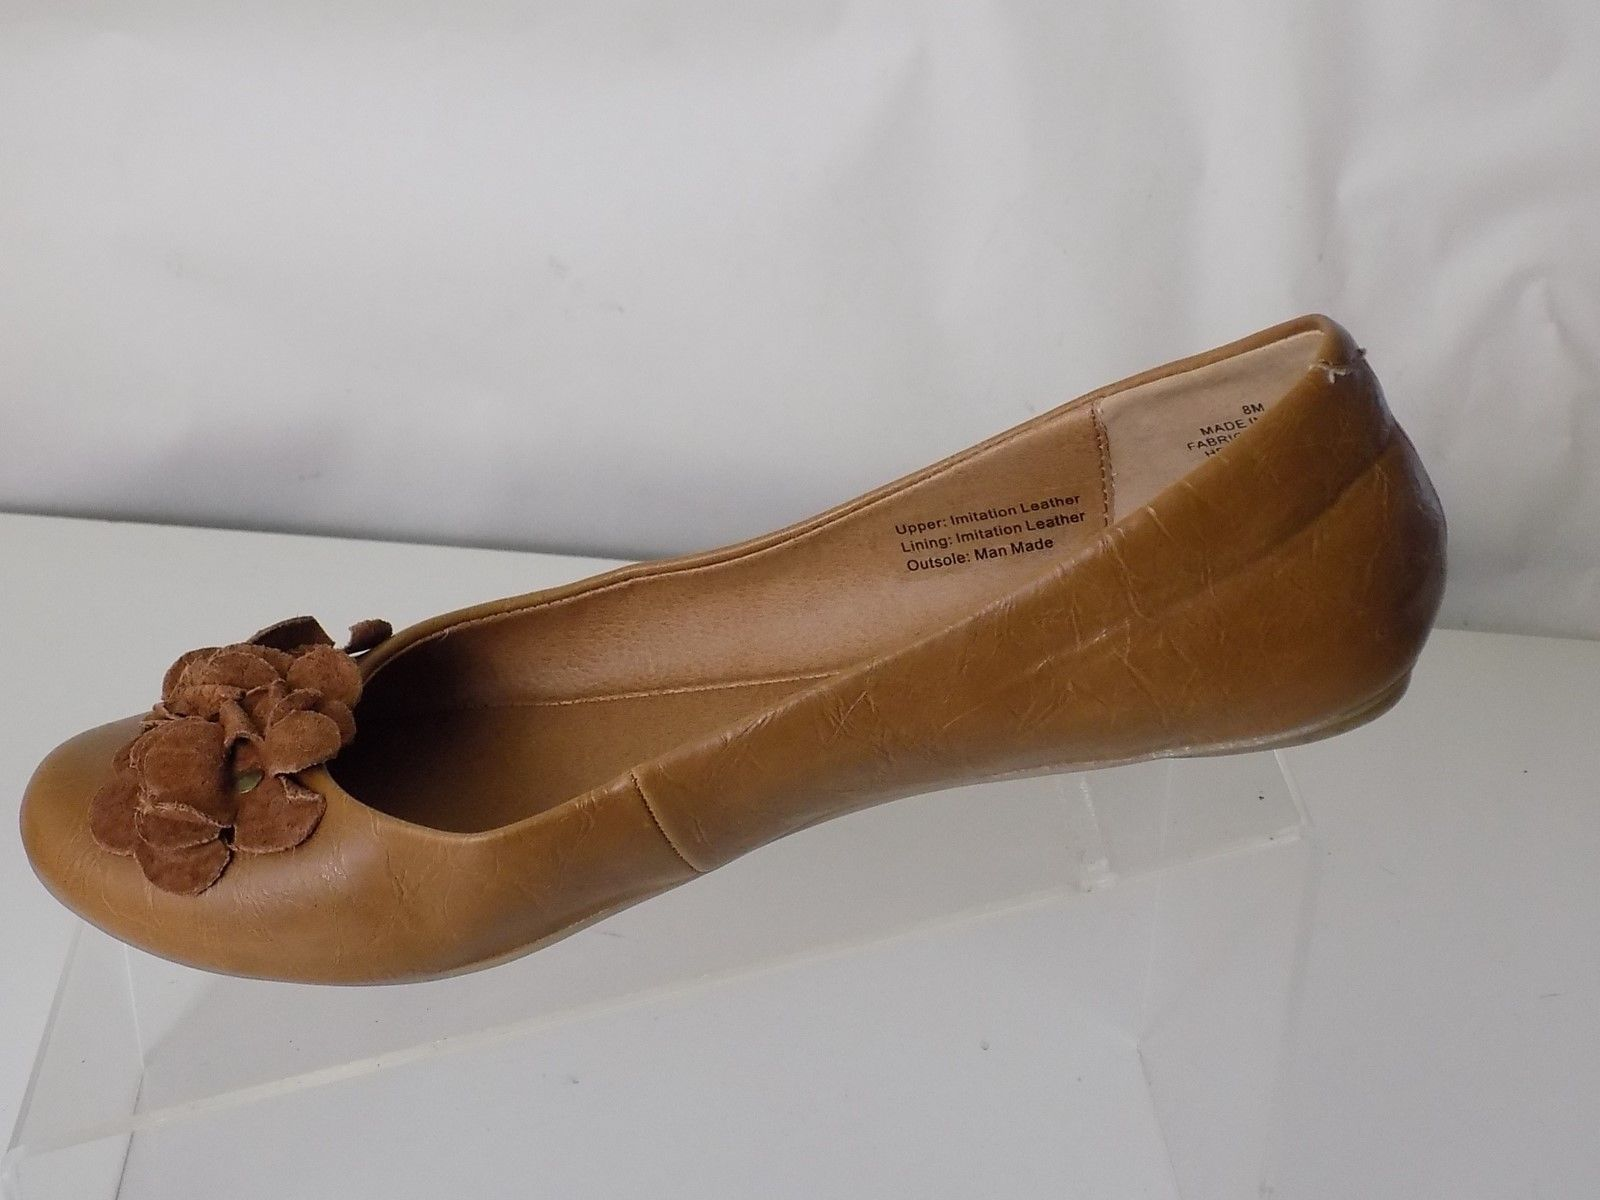 d2329758d05 KENNETH COLE REACTION ALL MAN MADE MATERIALS TAN FLAT SHOES WOMENS SIZE 8 M